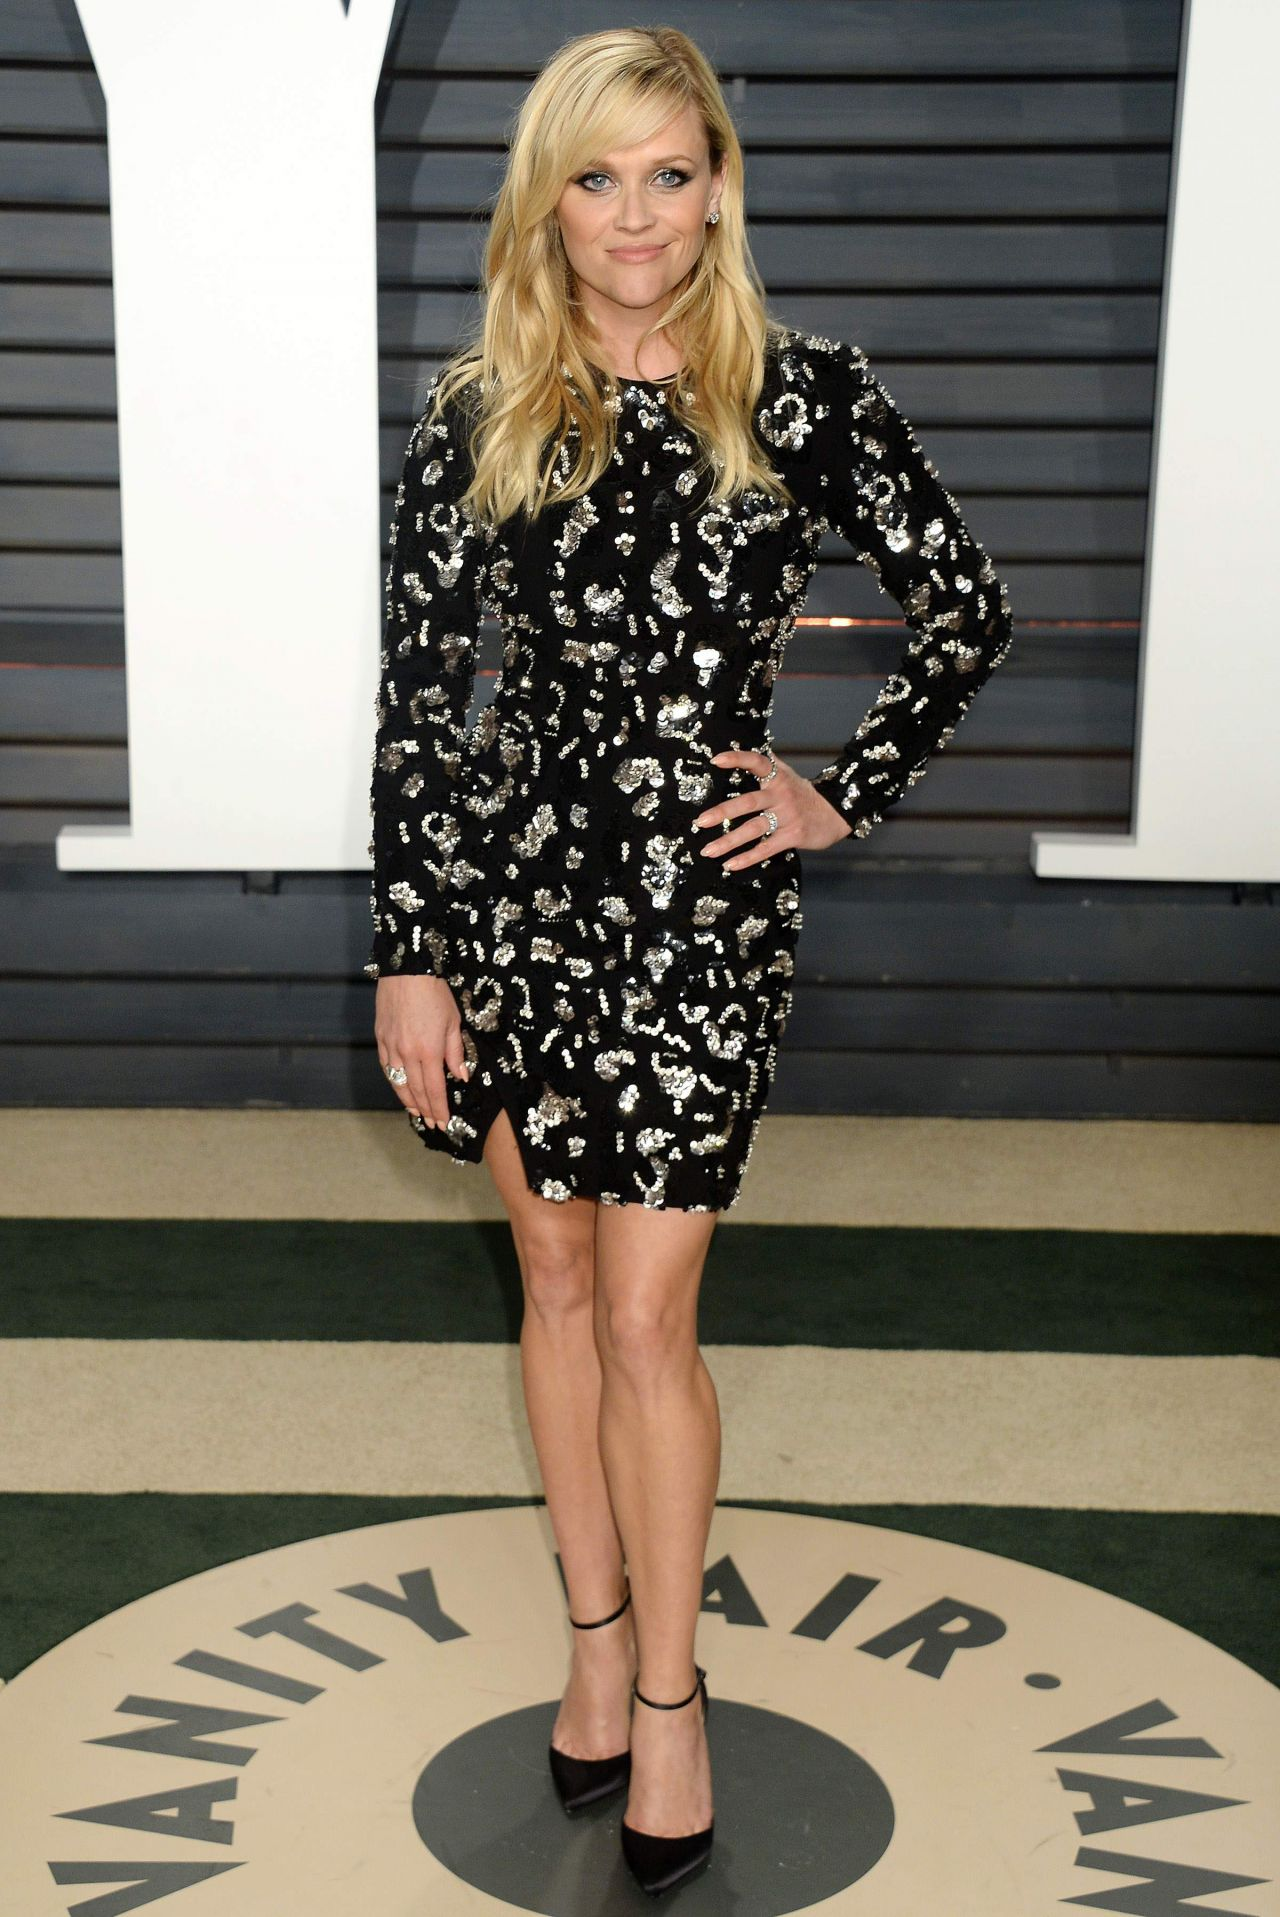 Reese Witherspoon At Vanity Fair Oscar 2017 Party In Los Angeles